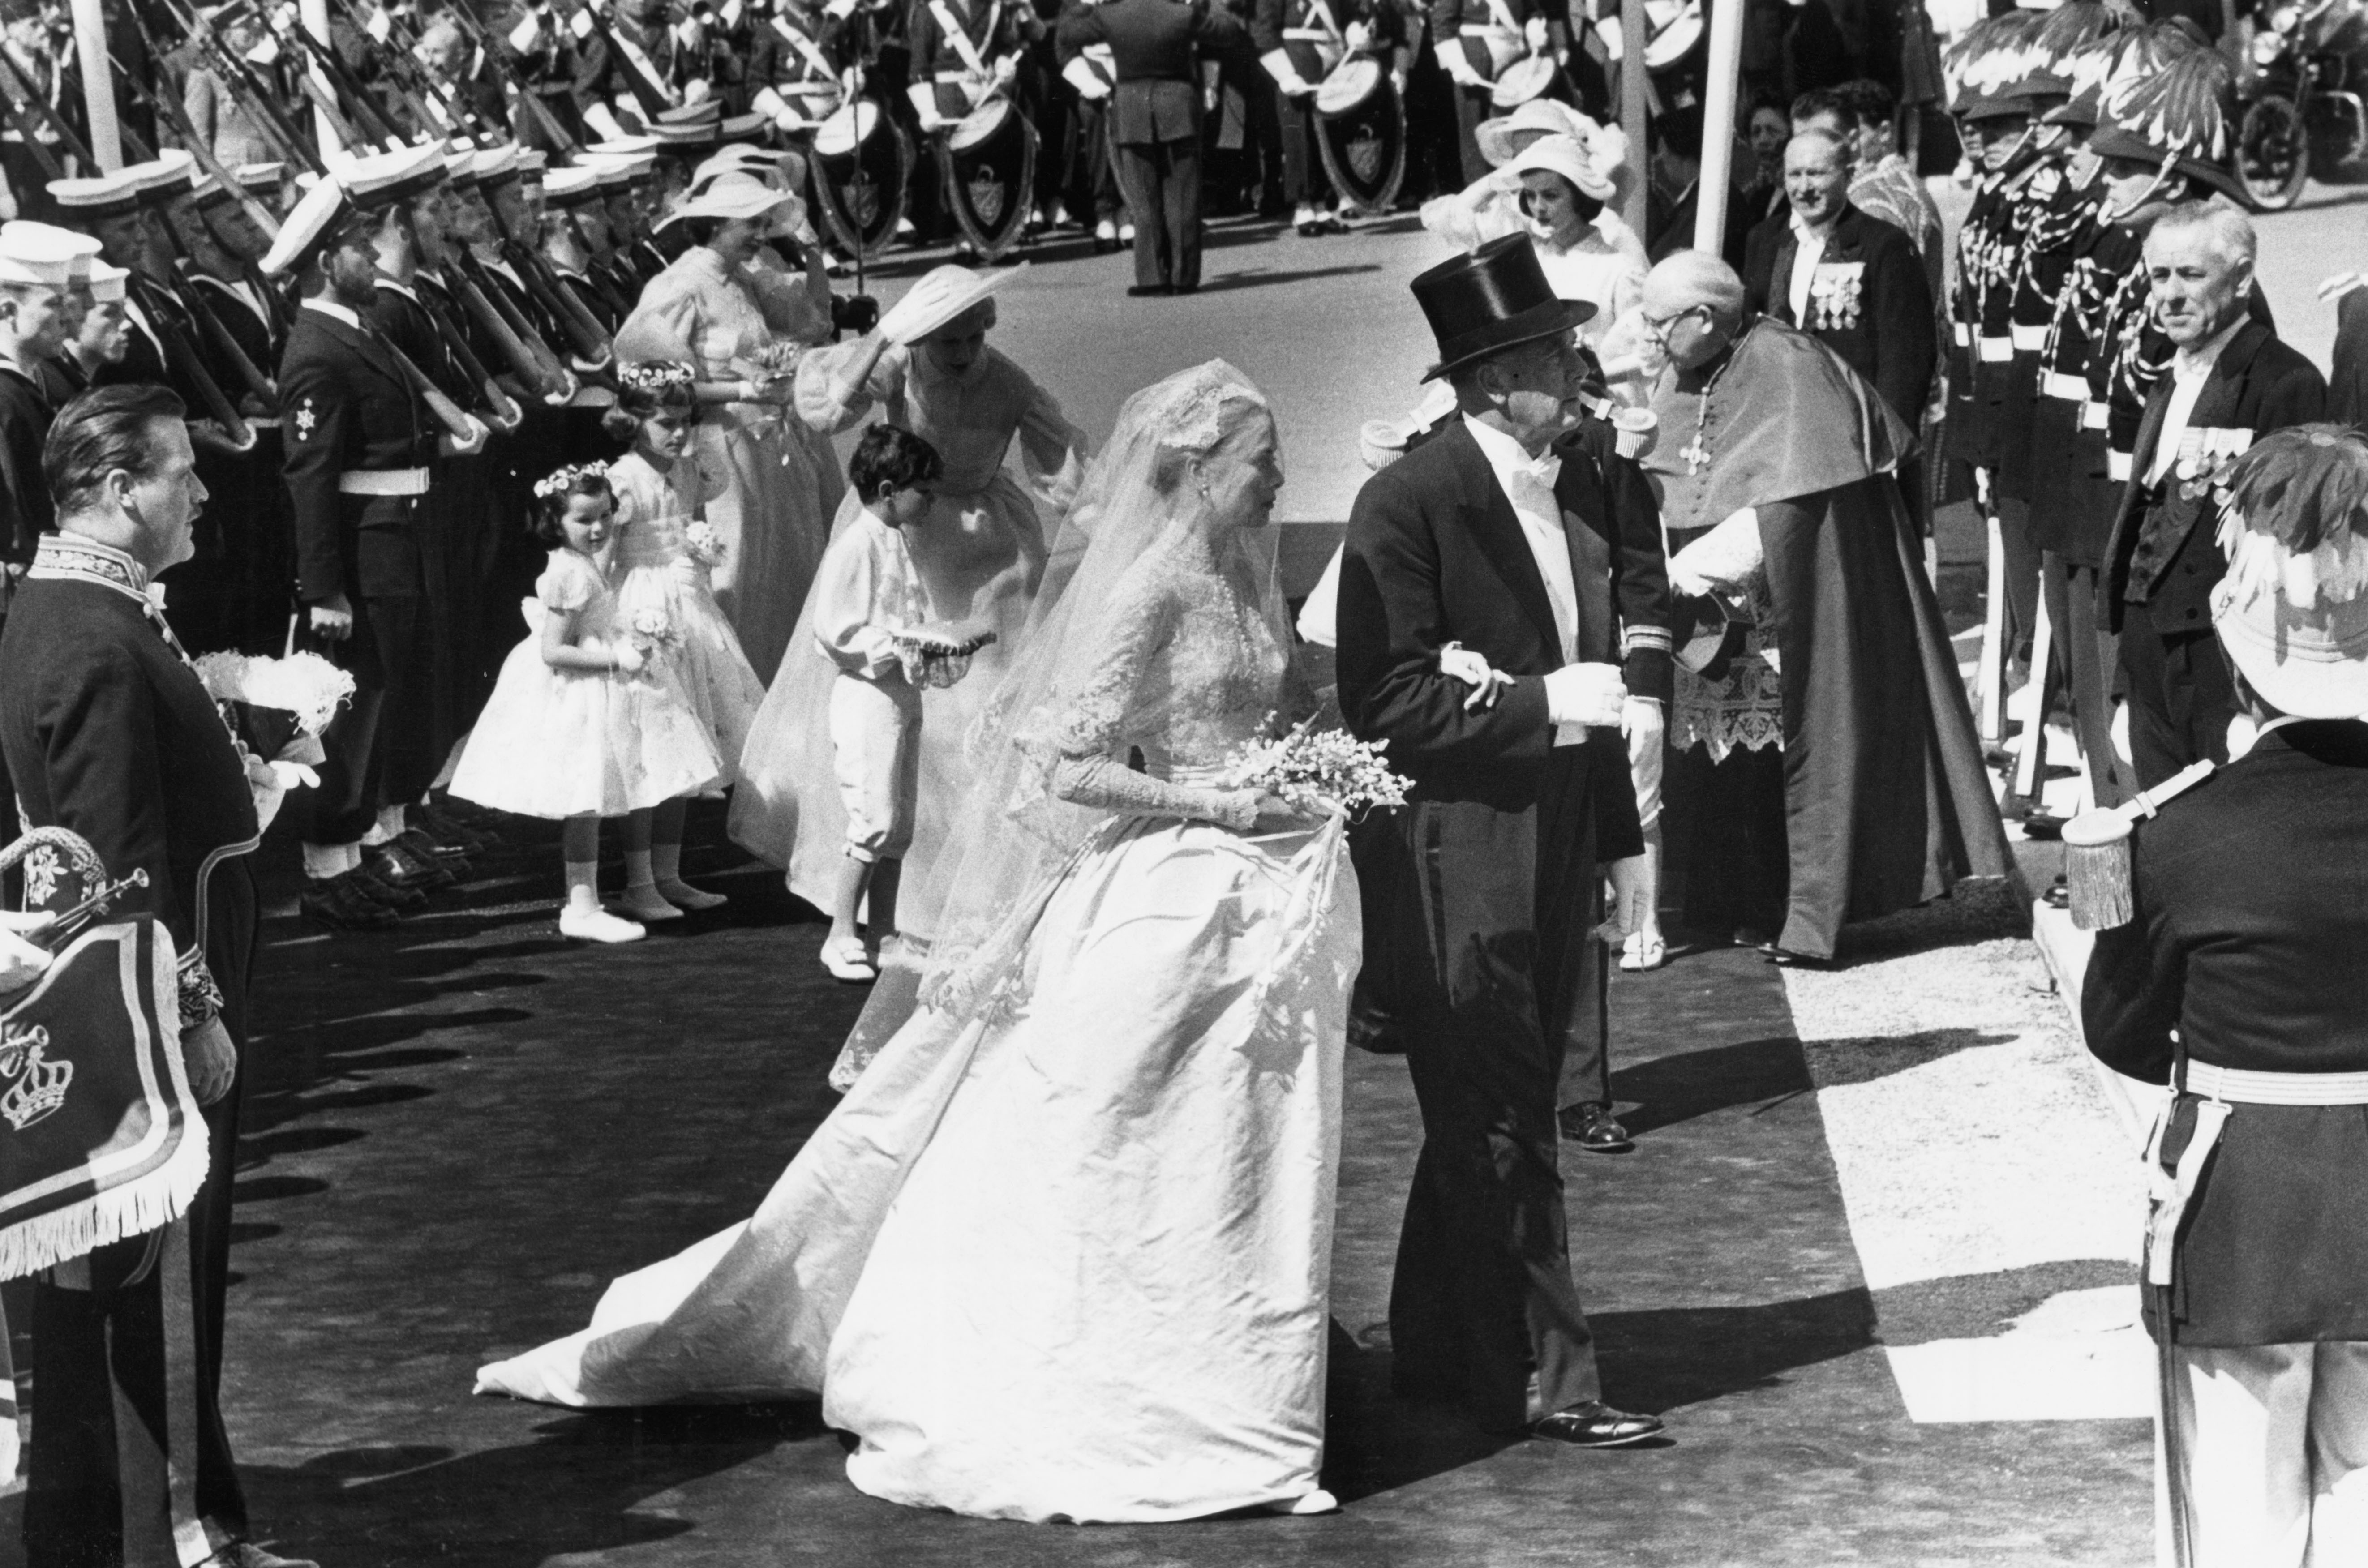 Dressed In A Princess Worthy Wedding Gown By Academy Award Winning Designer Helen Rose Grace Kelly Exchanged Vows With Prince Rainier Of Monaco On April